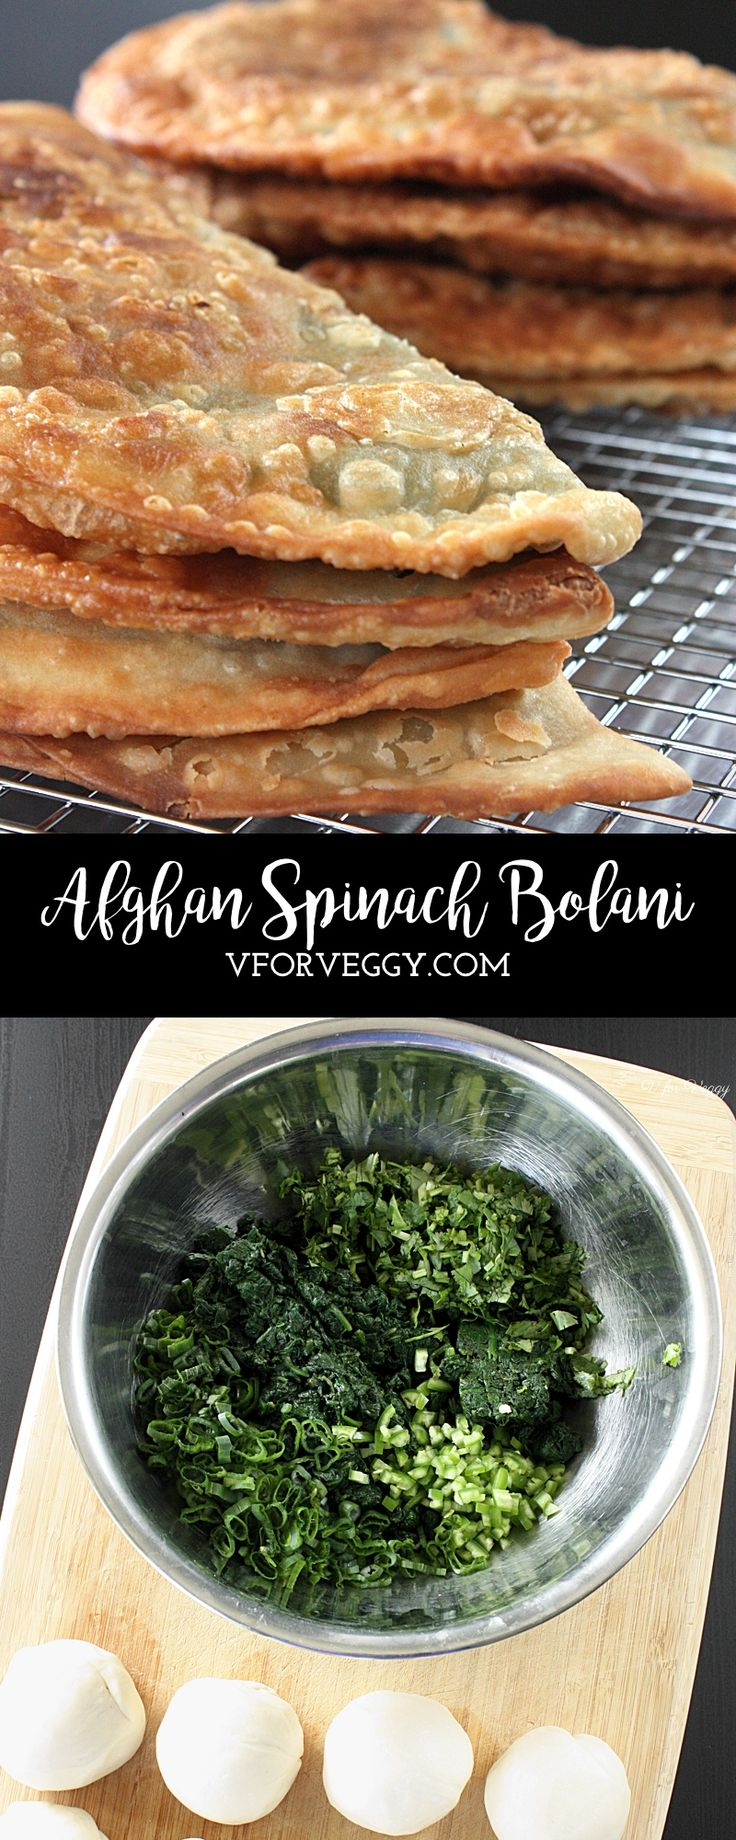 Afghan Spinach Bolani